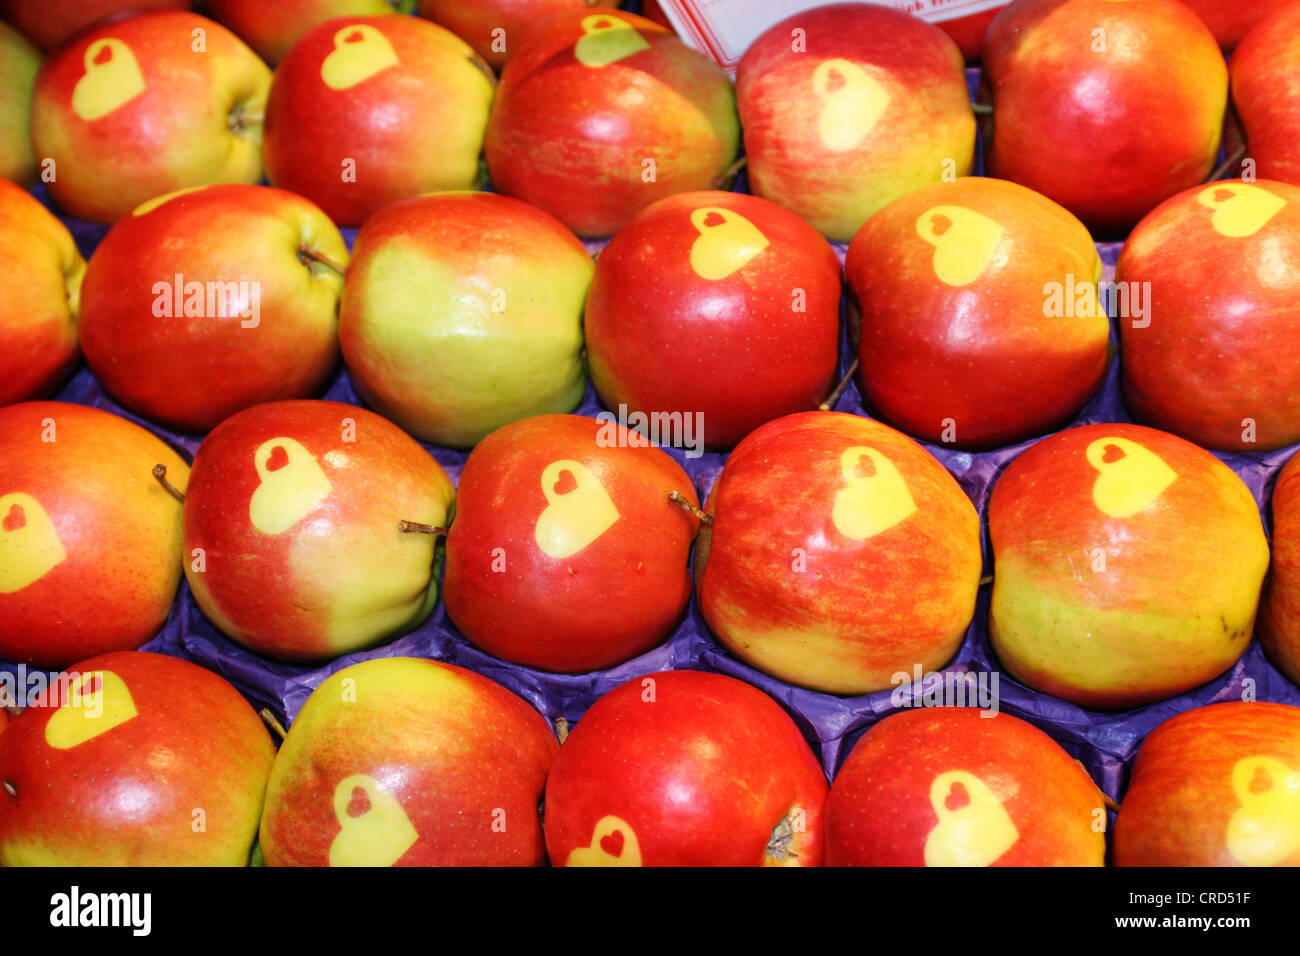 apple (Malus domestica), apples with hearts on display - Stock Image